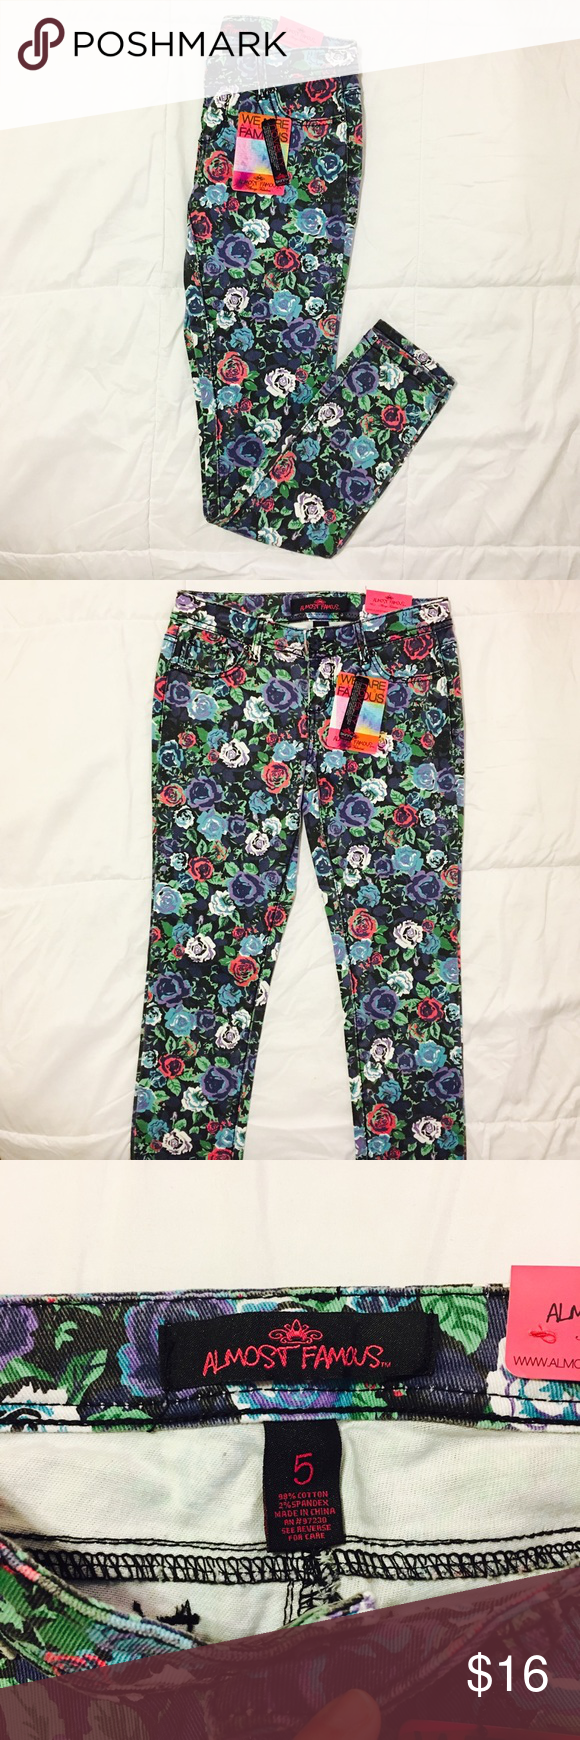 Floral Skinny Jeans Denim floral skinny jeans from American Eagle. Size 5. Really cute, brand new with tags! Almost Famous Jeans